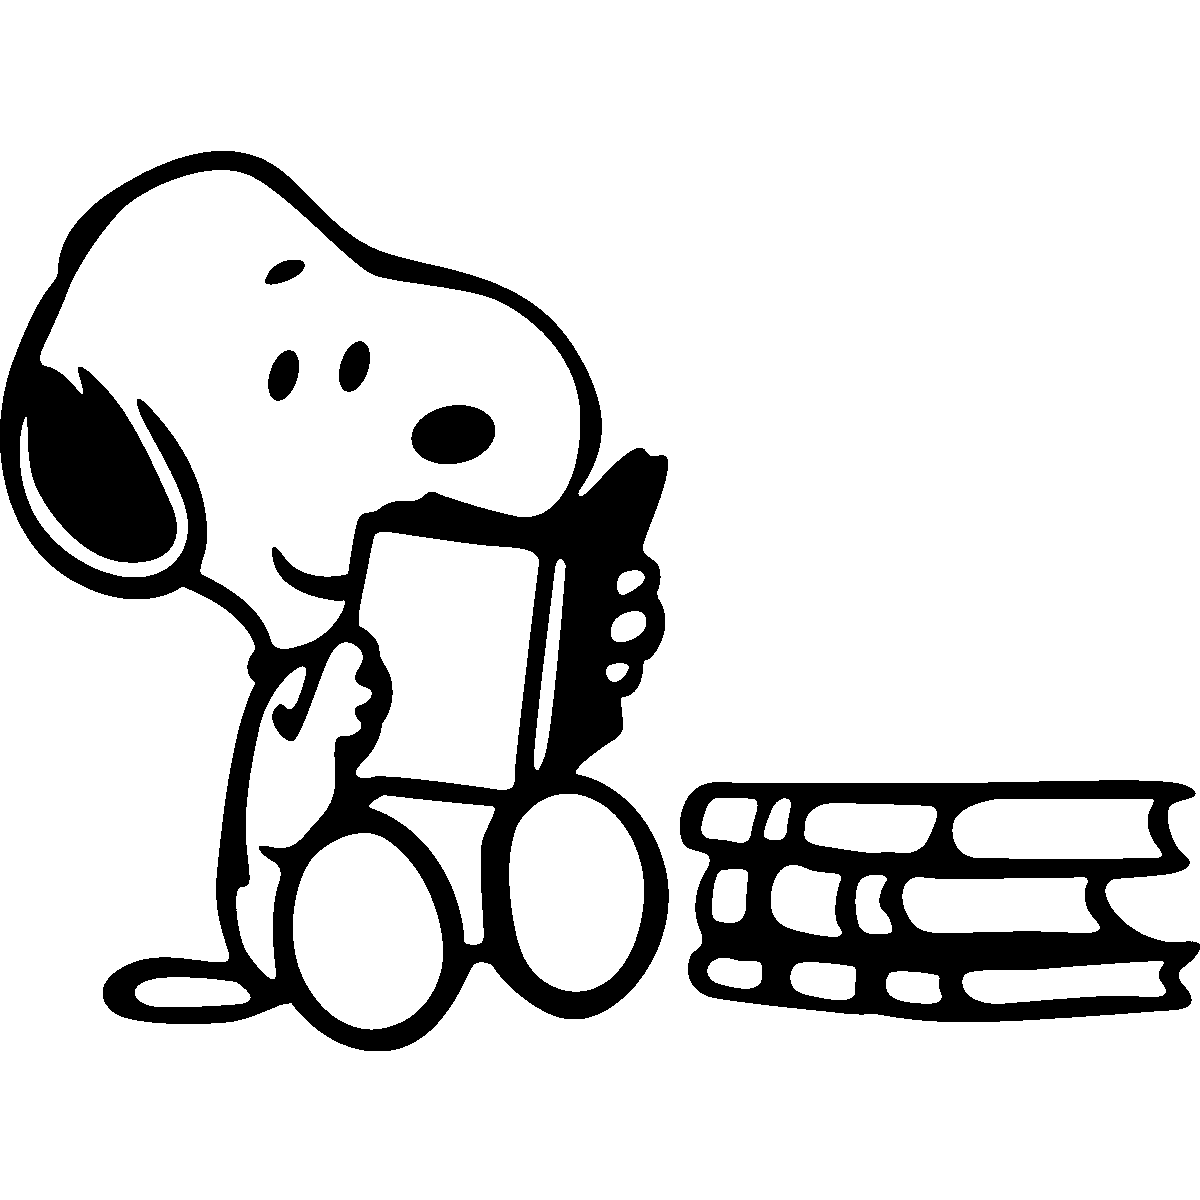 Snoopy clipart writing Books Pinterest Reading <3 Snoopy